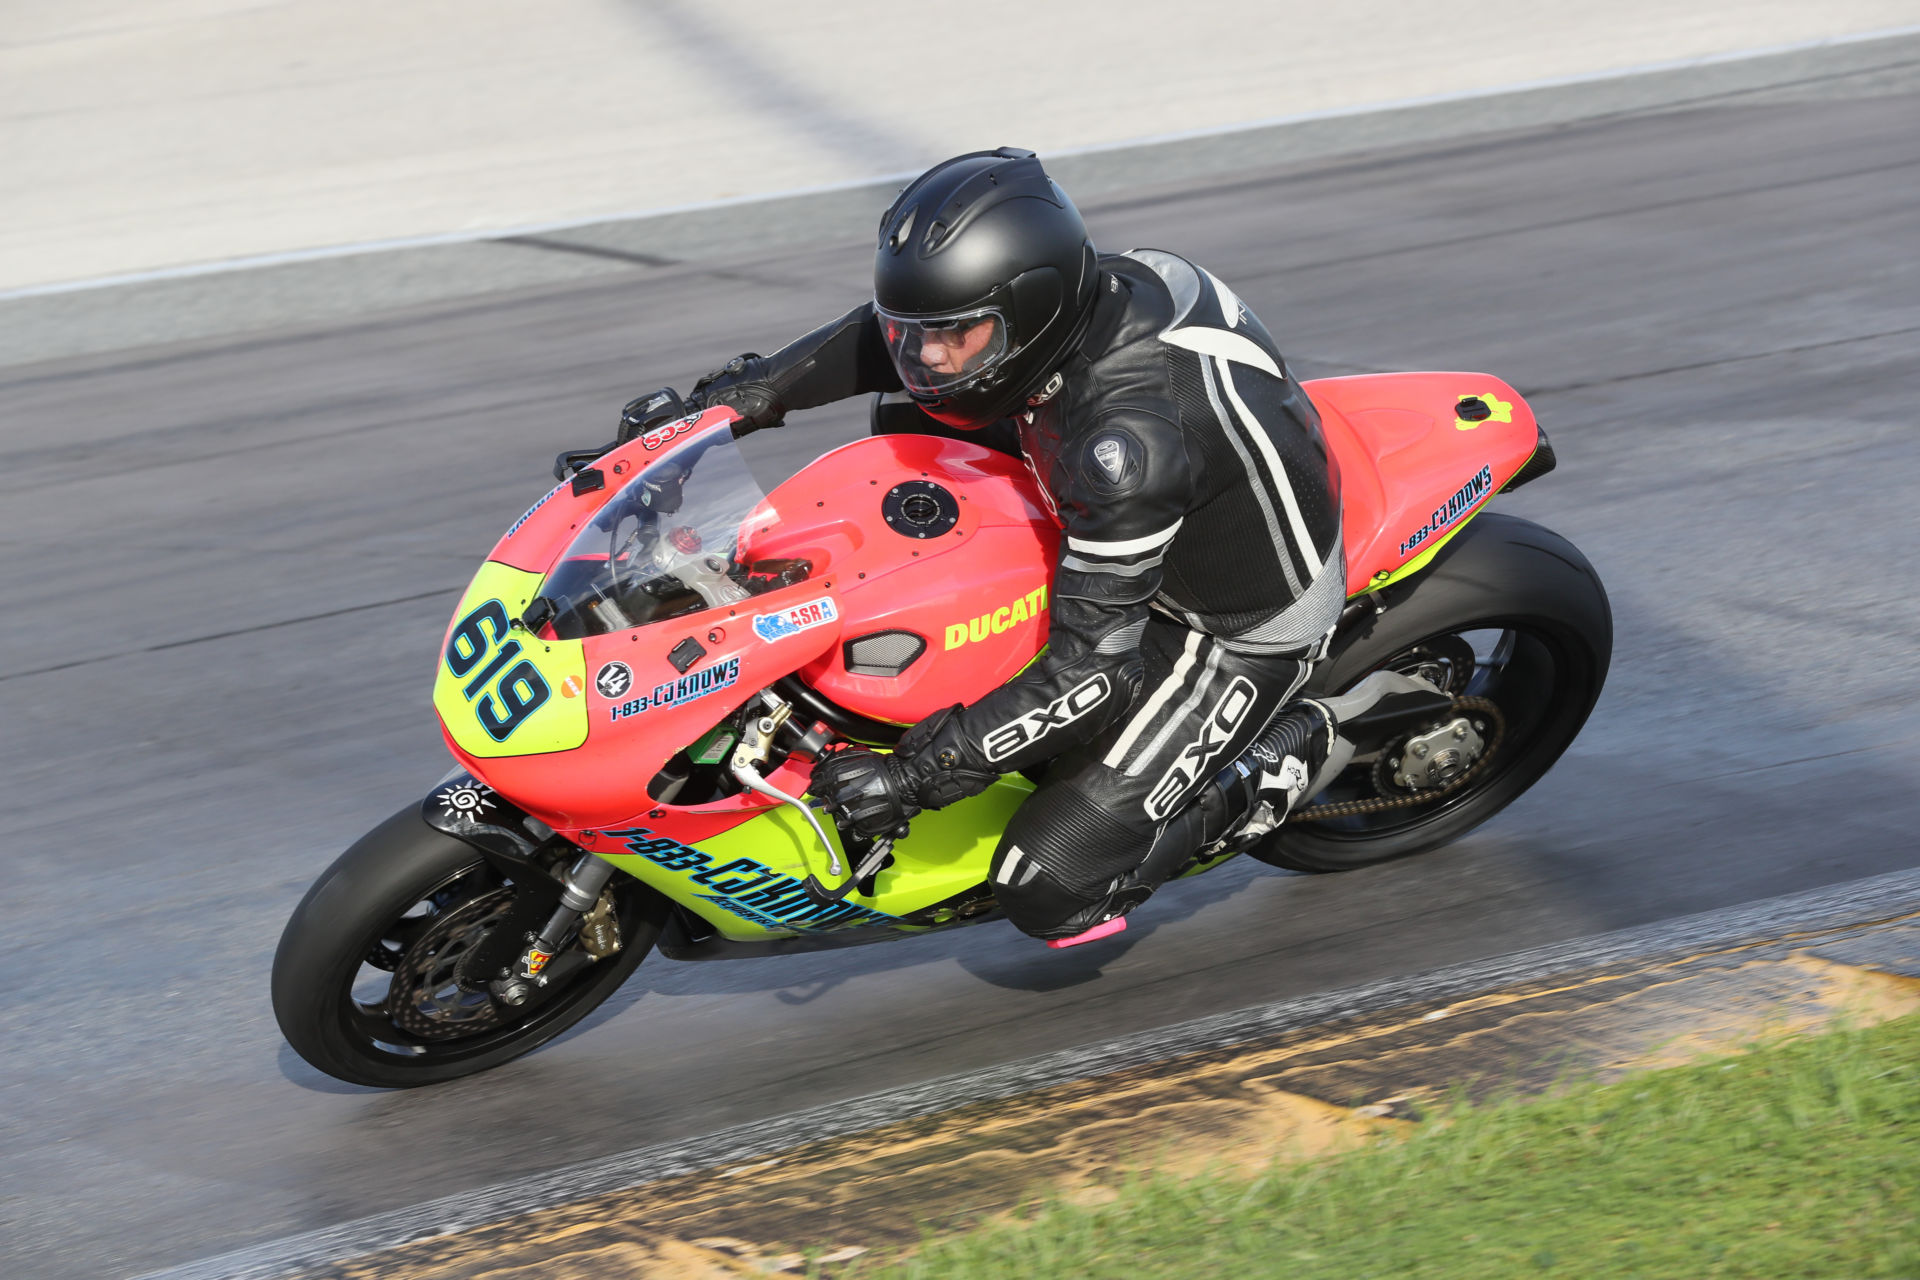 CJ Czaia (619) at the CCS Race of Champions at Daytona International Speedway in 2018. Photo by Brian J. Nelson.